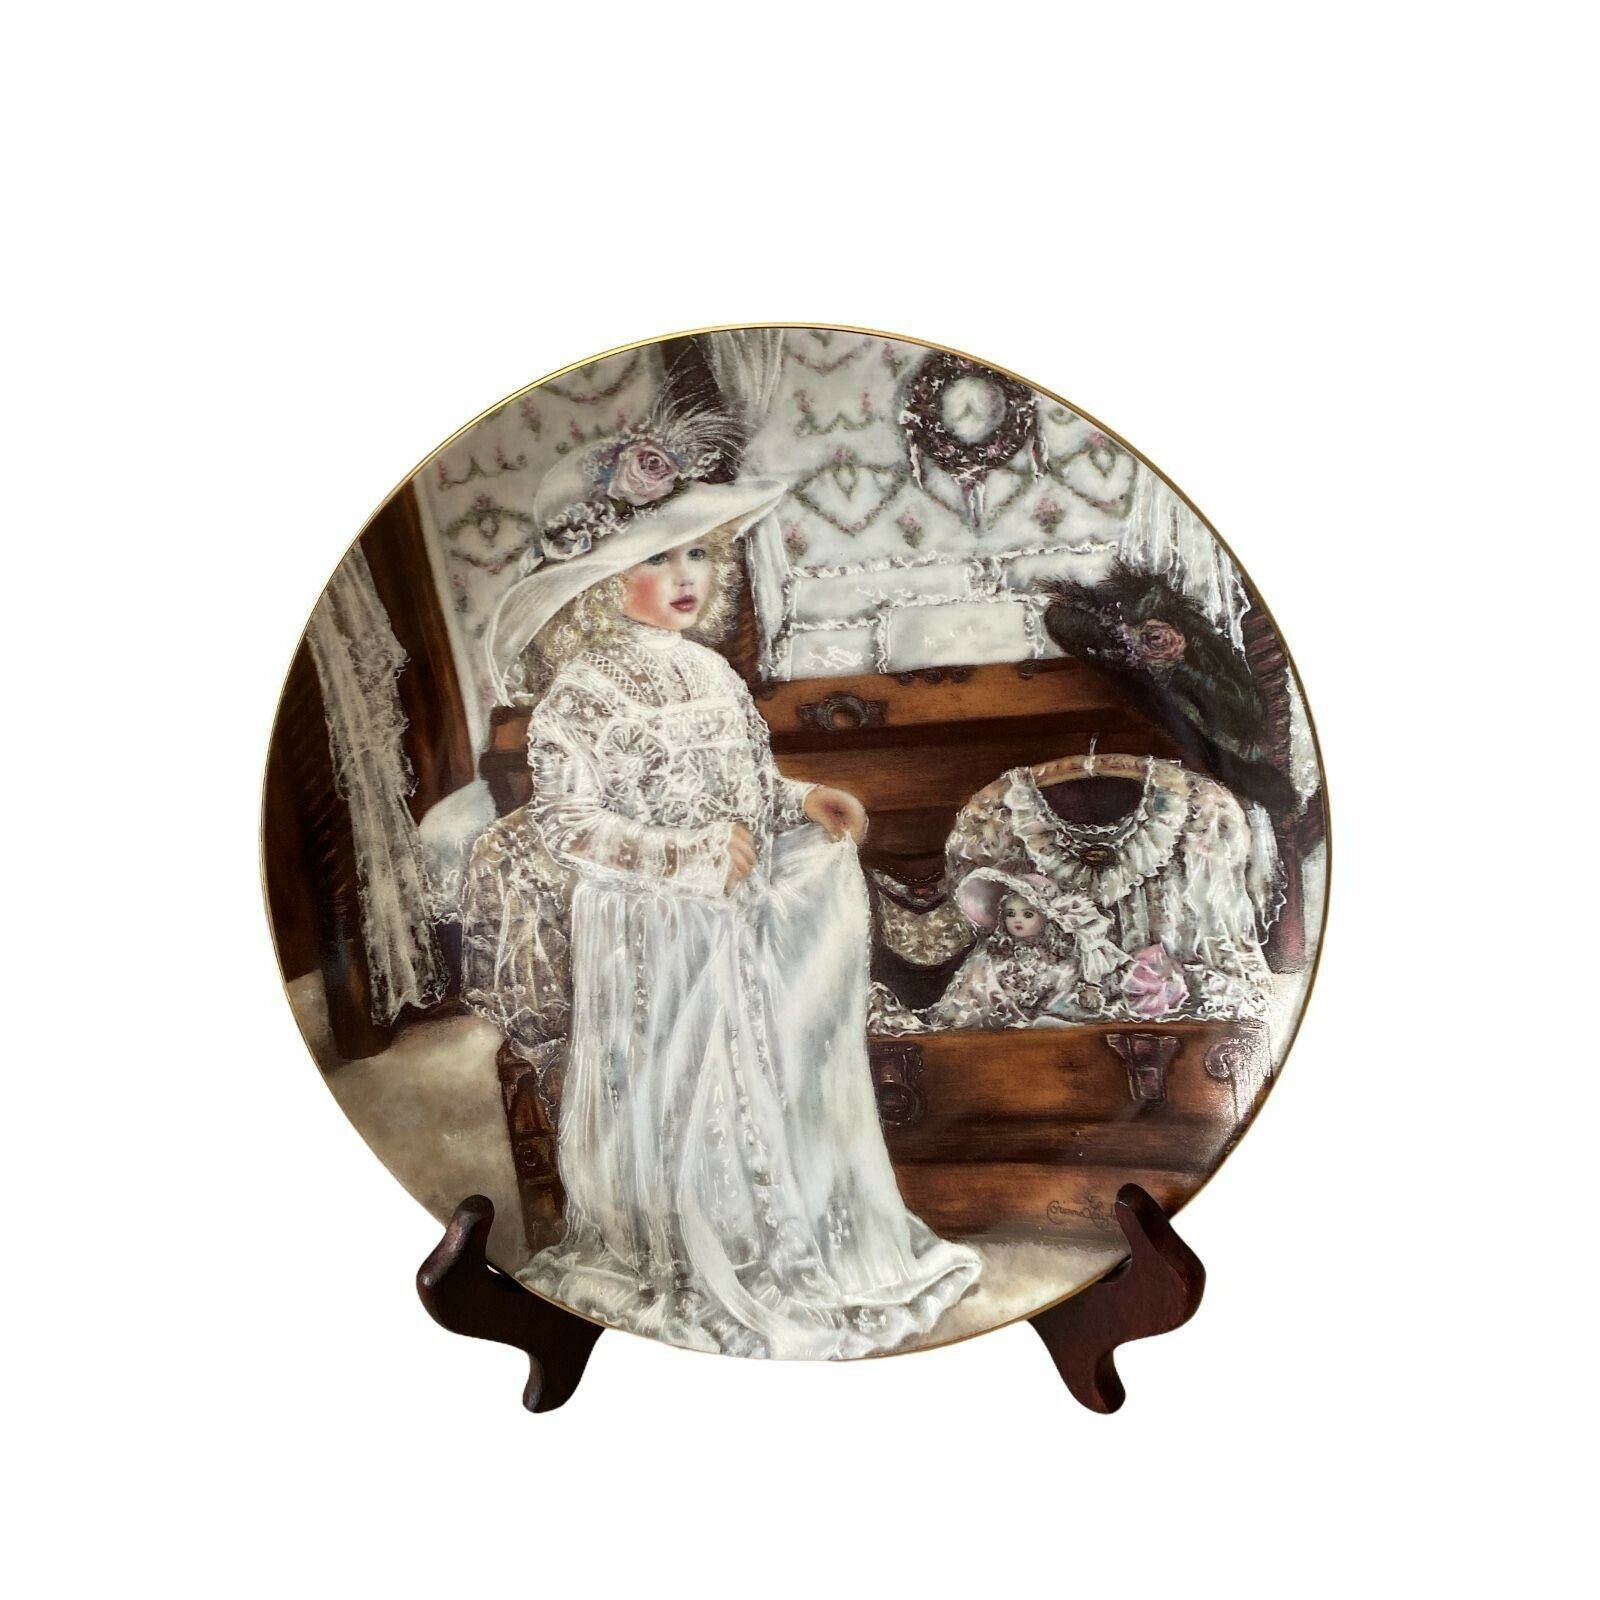 Olivia 1990 collectors plate Edwin Knowles Heirloom and Lace Series Corinne Layt - $10.99